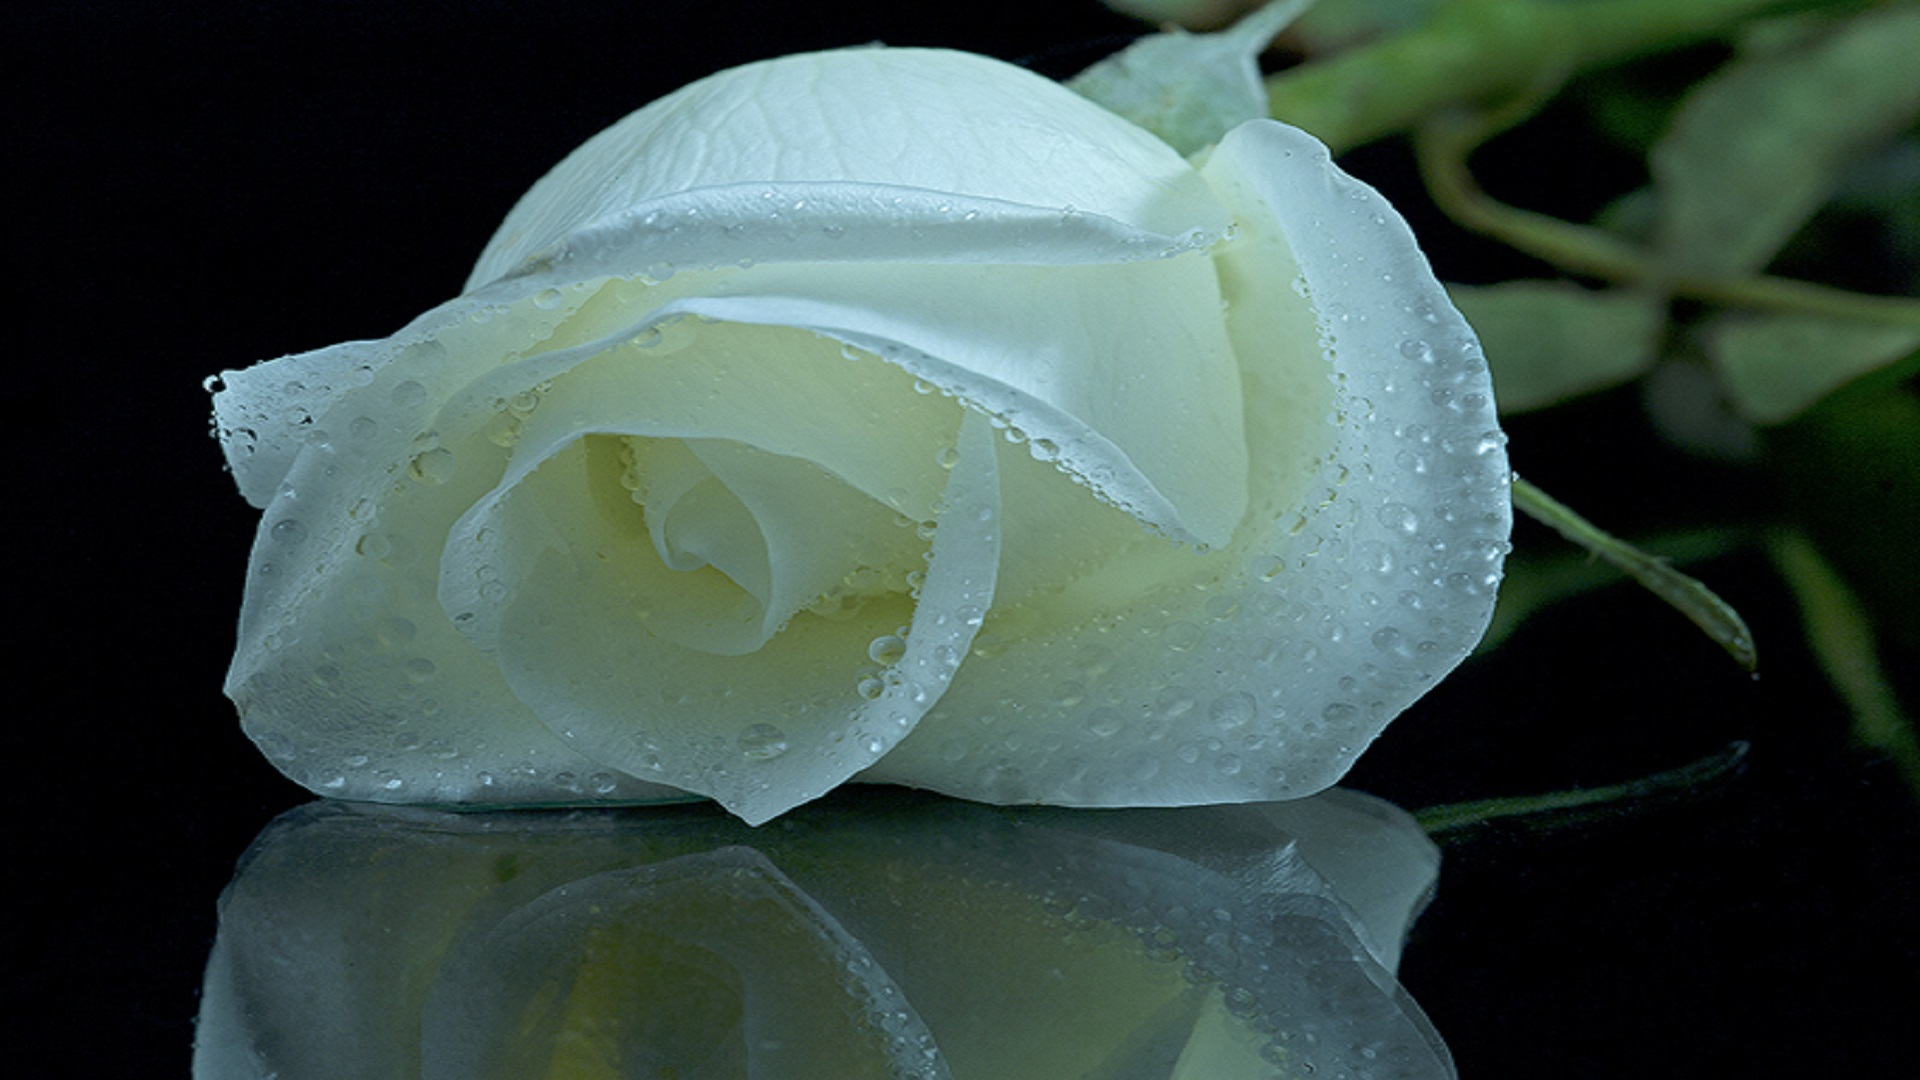 World beautiful flower rose image